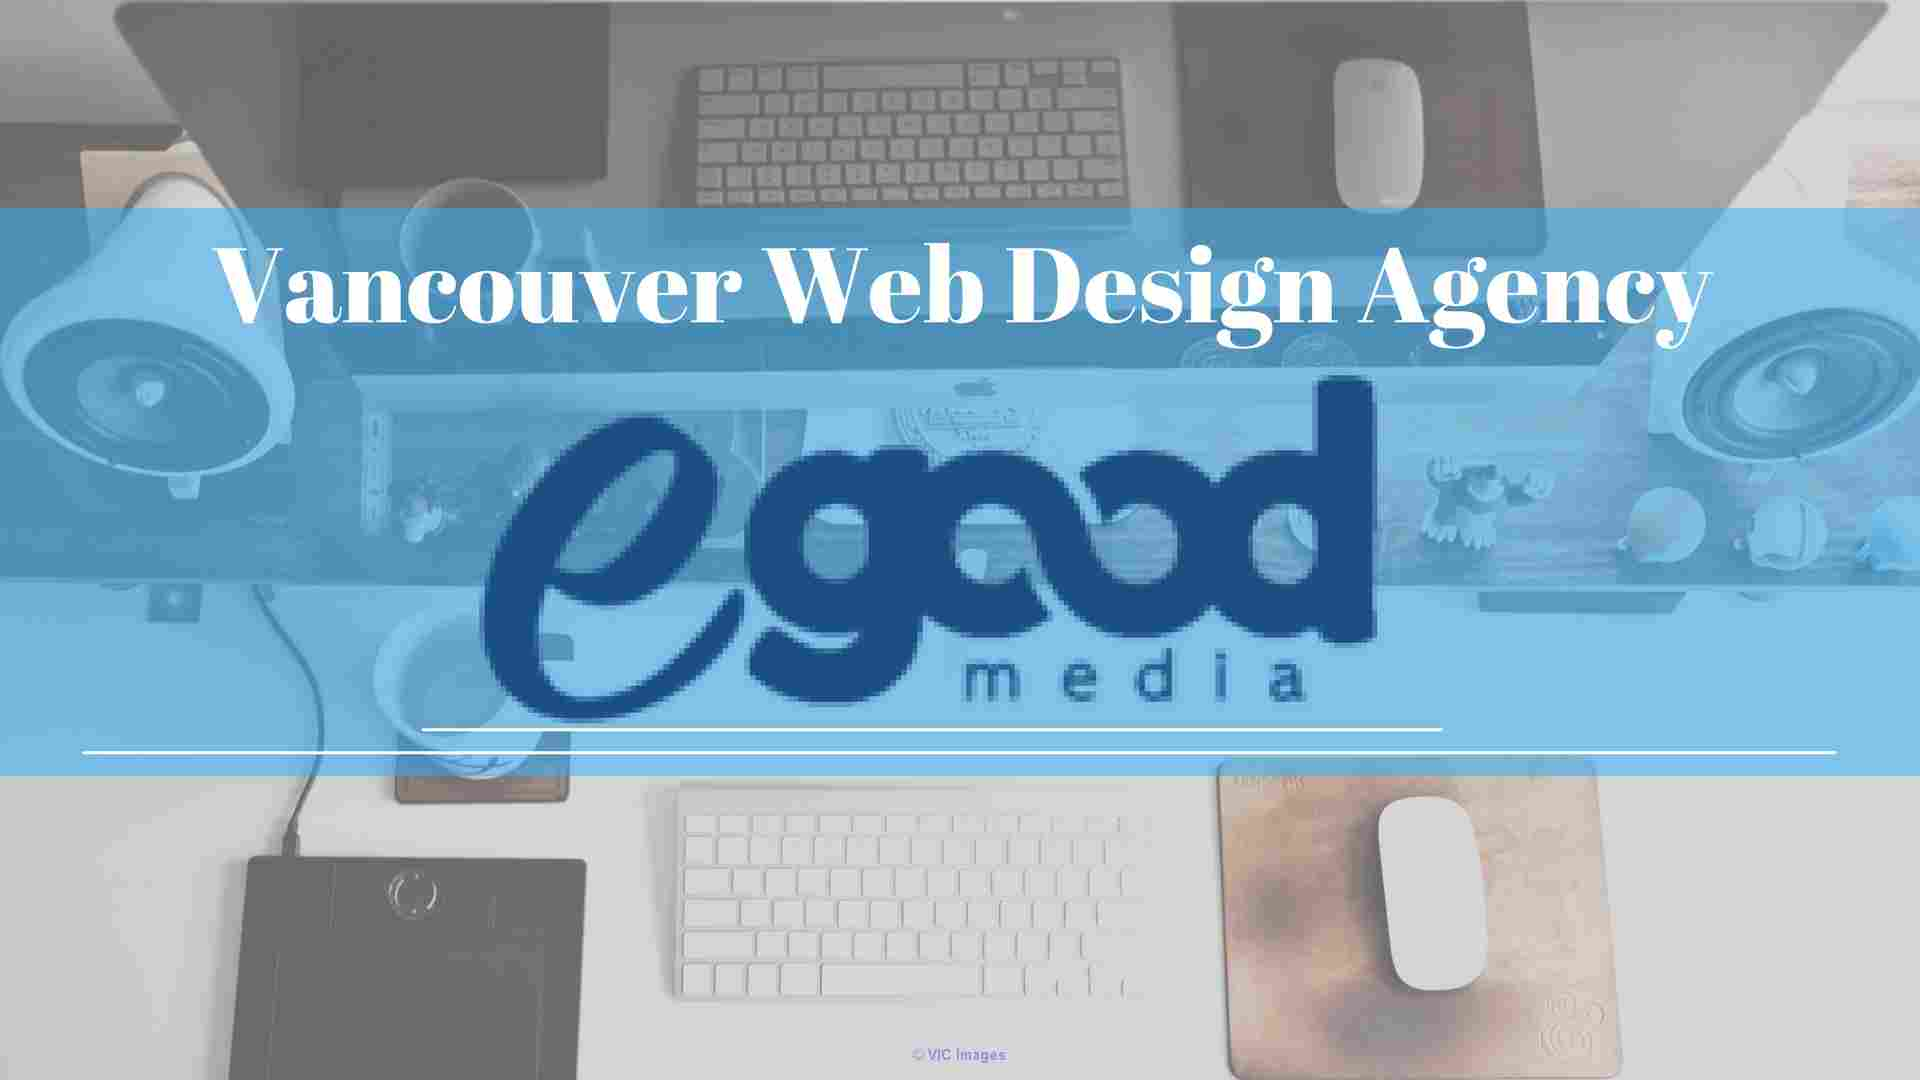 eGoodMedia  | Reputed Vancouver Web Design Agency  Ottawa, Ontario, Canada Classifieds